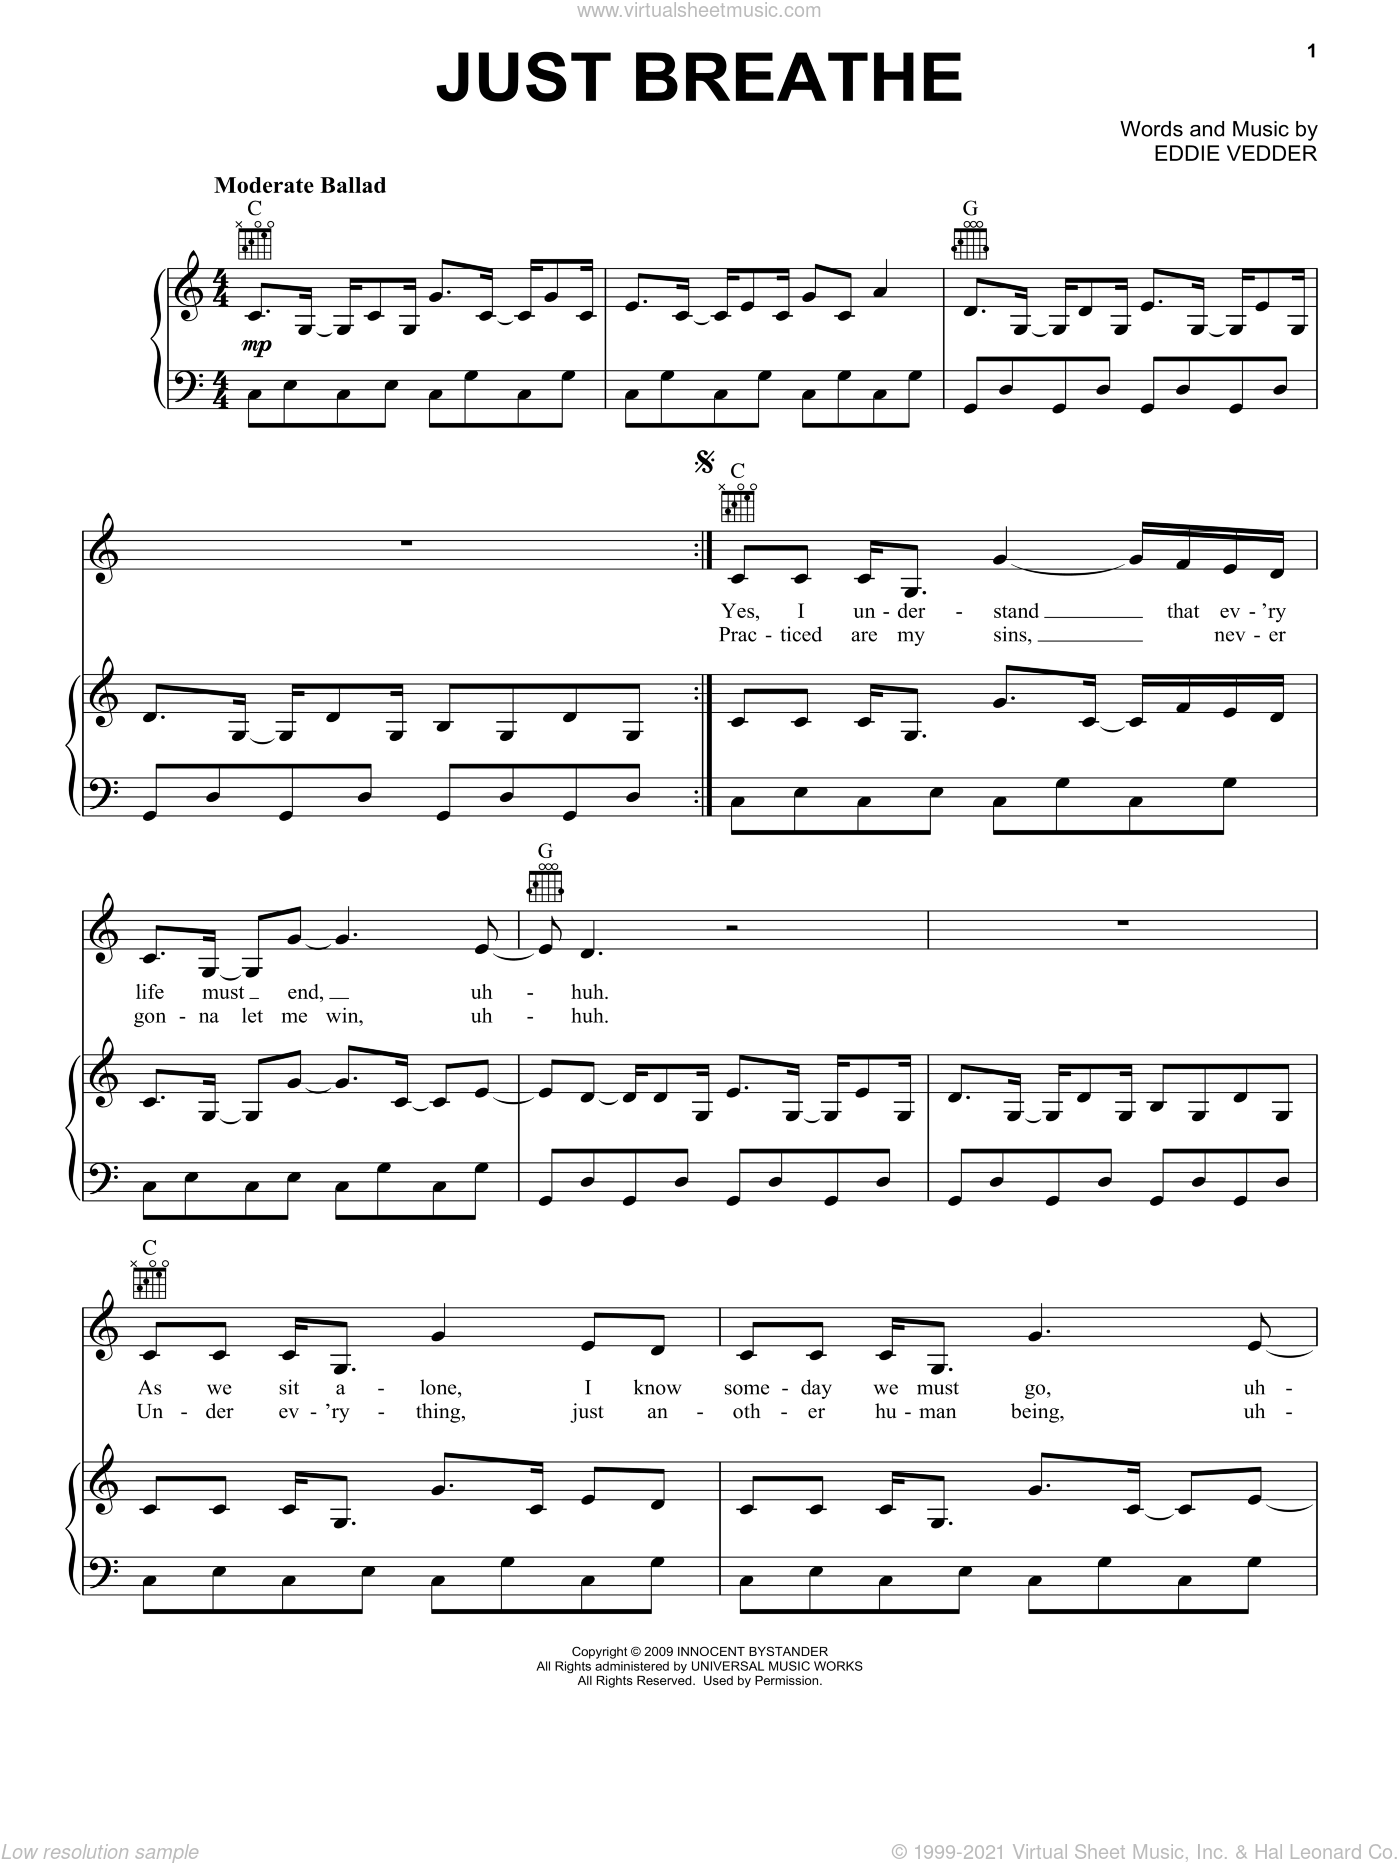 Just Breathe sheet music for voice, piano or guitar by Pearl Jam and Eddie Vedder, intermediate skill level